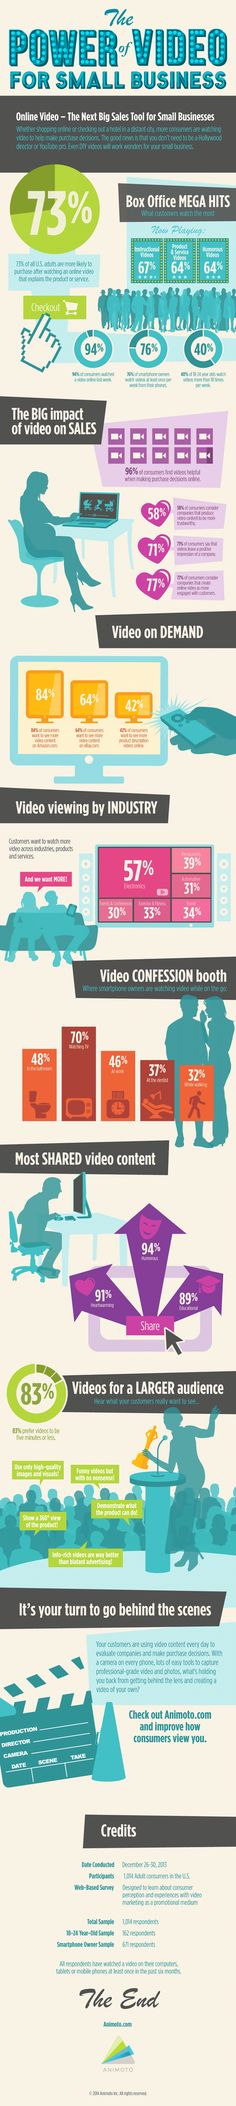 The Power of Video for Small Business infographic